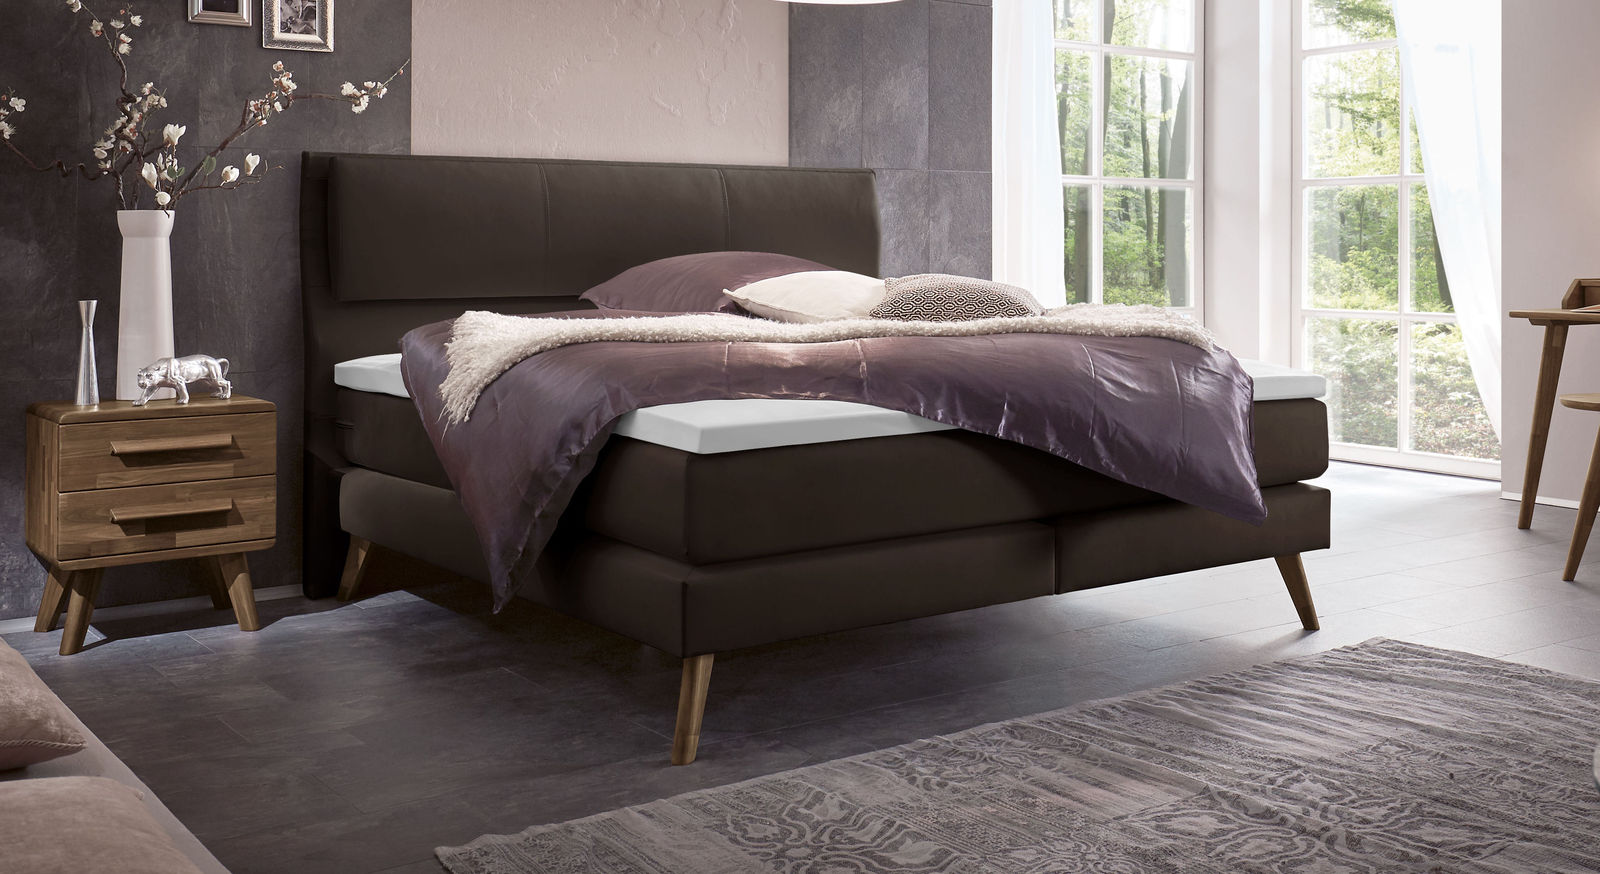 Espargo Boxspringbett in anthrazit